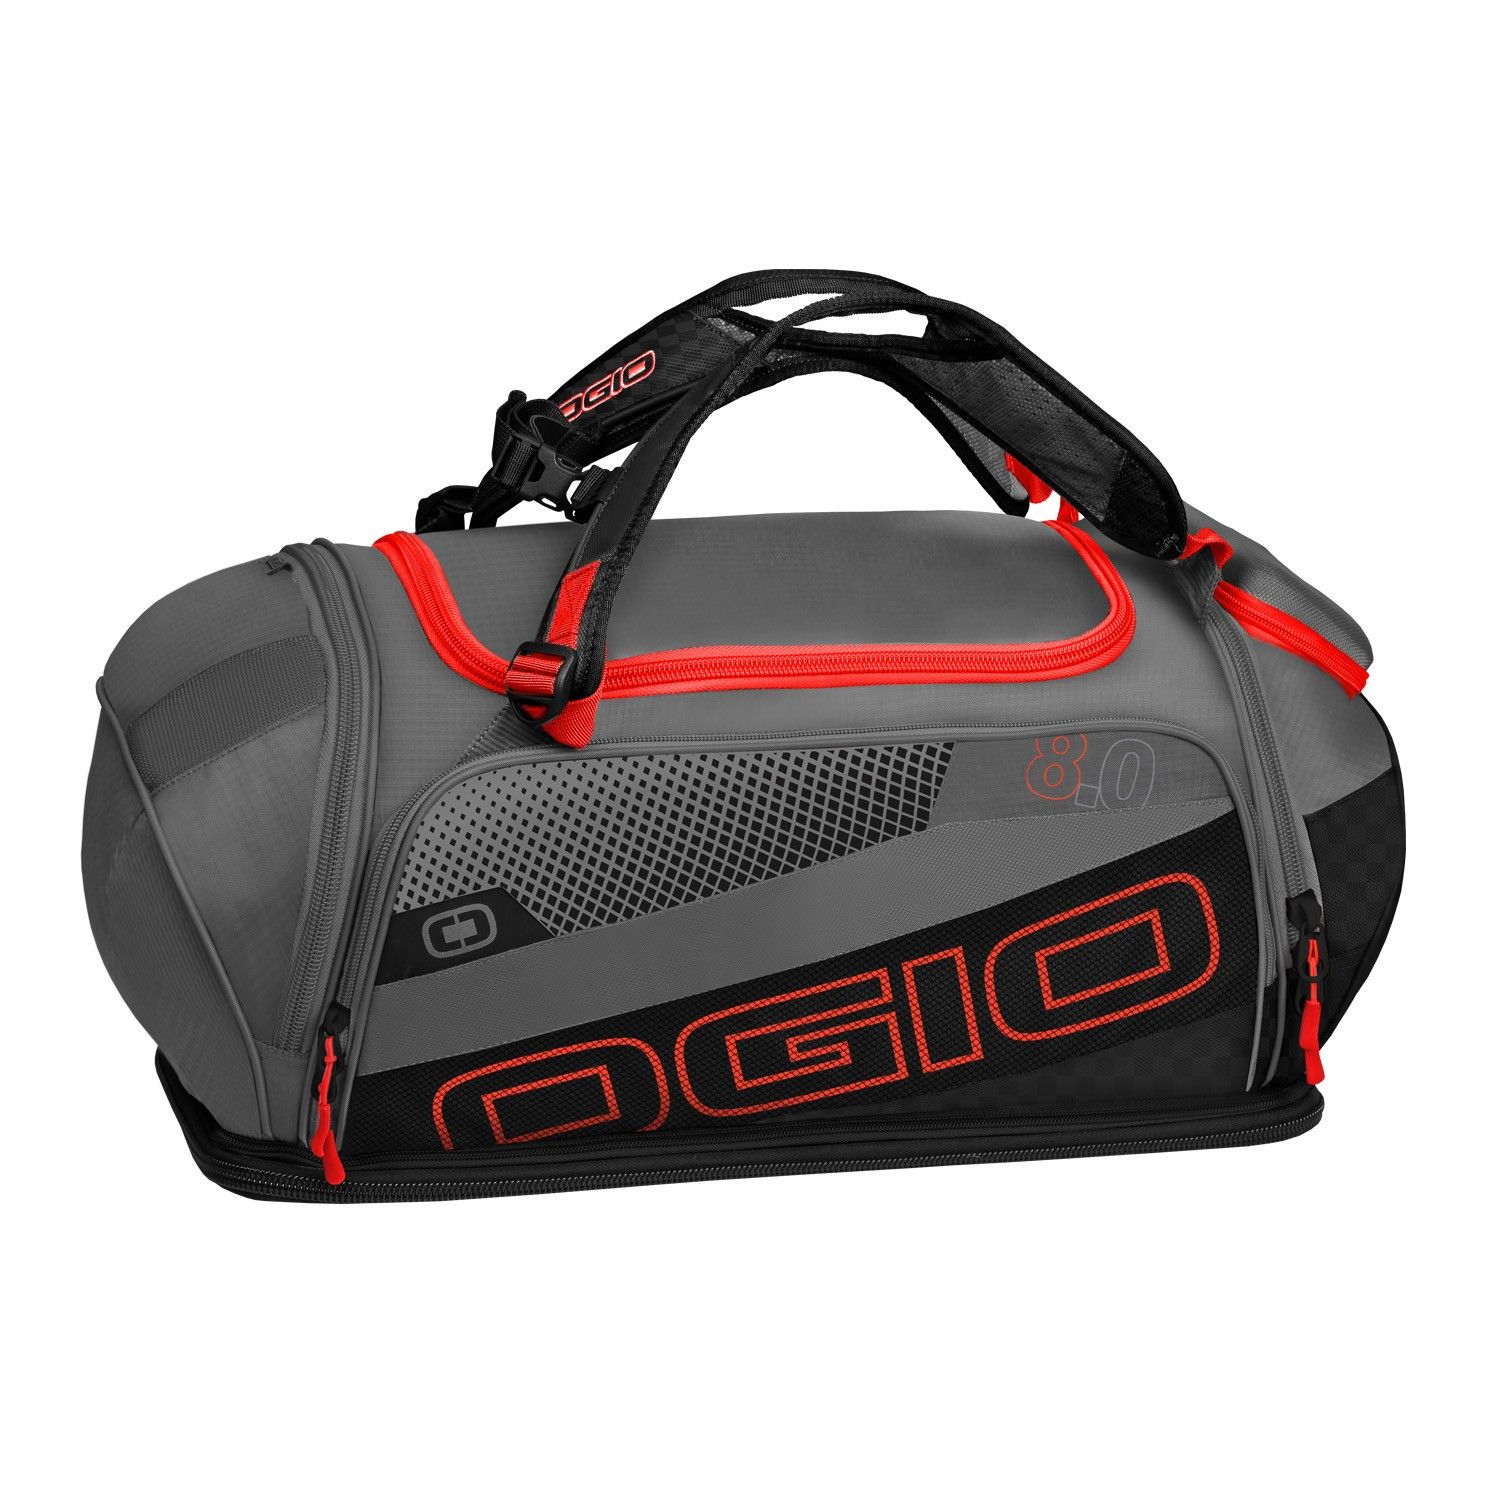 OGIO 80 ATHLETIC BAG Grab Your Gear And Go This Bag Is Designed With